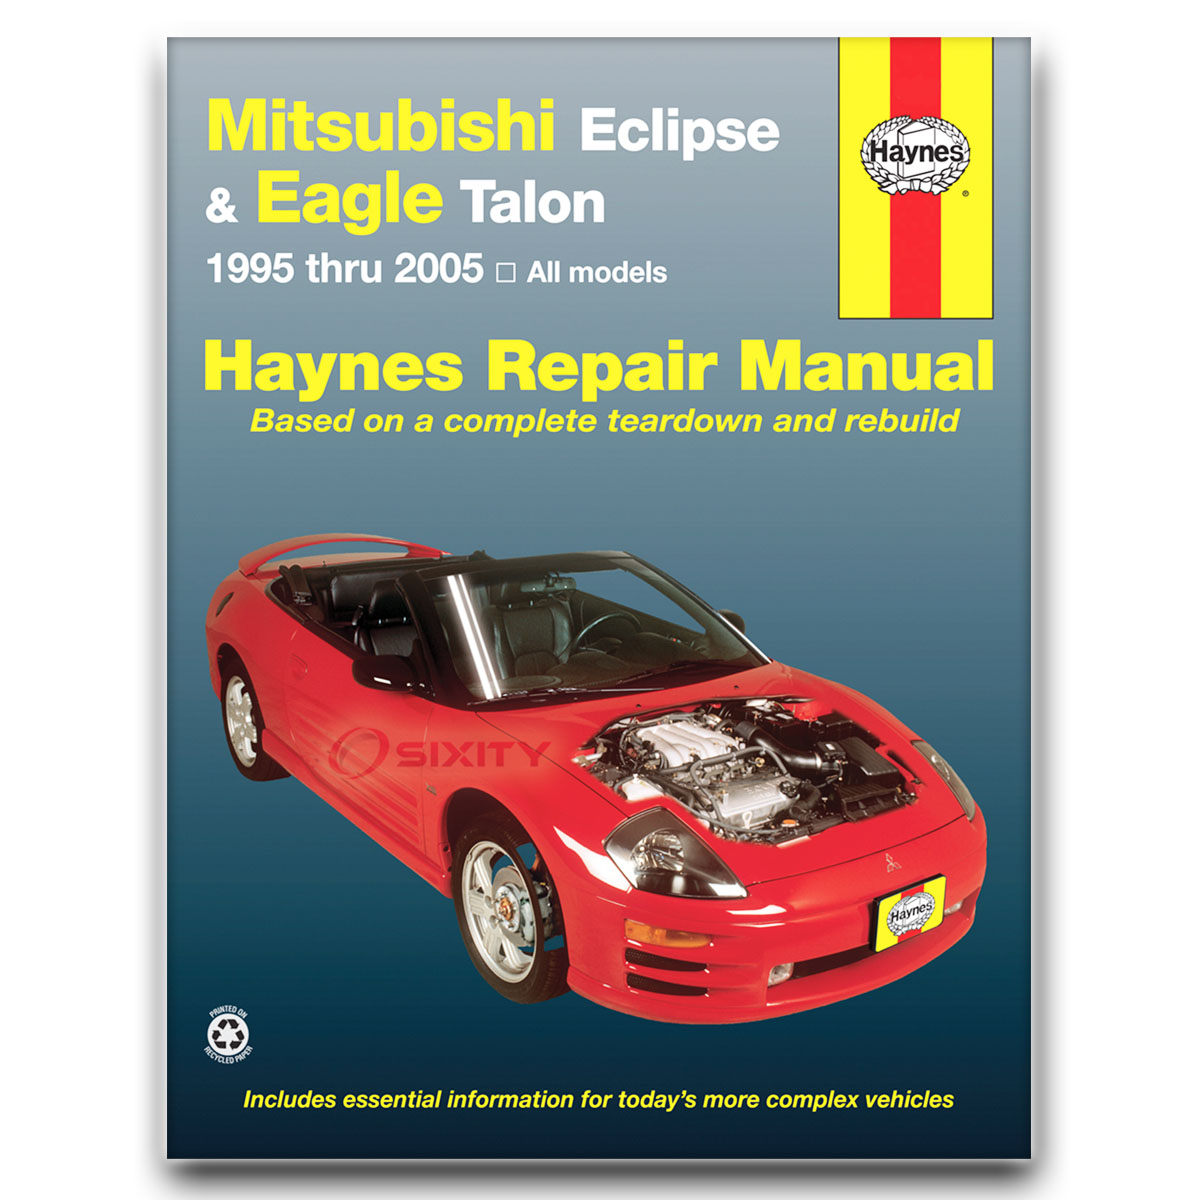 Garage Auto 95 Details About Haynes Repair Manual For 1995 2005 Mitsubishi Eclipse Shop Service Garage Vx